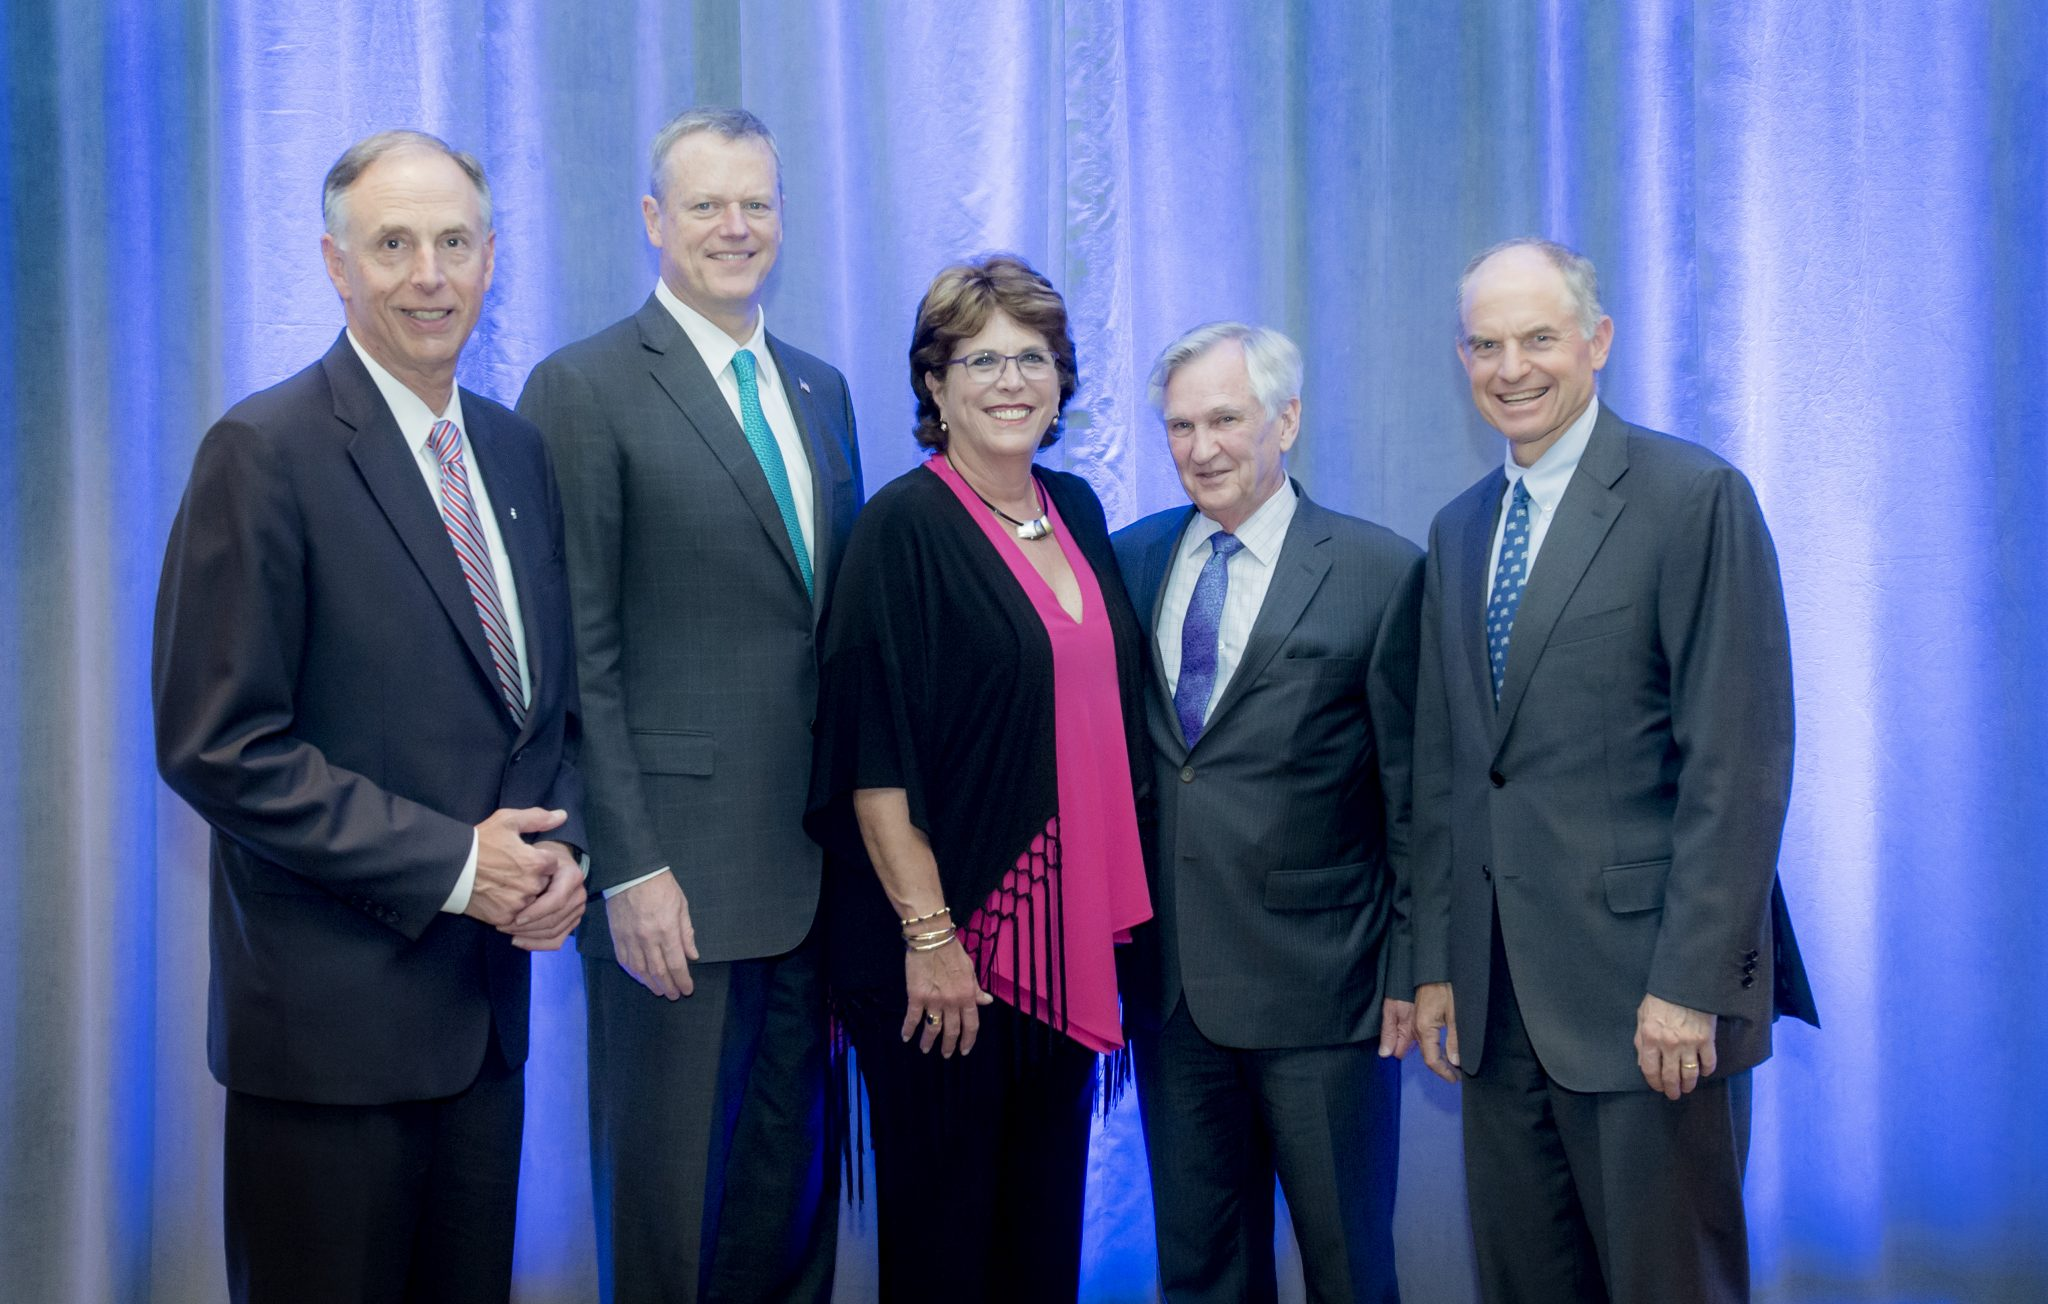 Gov. Baker (second from left) was joined by (left to right): DFS Co-Chair and Institute Trustee James Sadowsky; DFS Co-Chair and Institute Trustee Barbara Sadowsky; DFS member and Dana-Farber President and CEO Edward J. Benz Jr., MD; and Dana-Farber Board of Trustees Chairman Joshua Bekenstein.